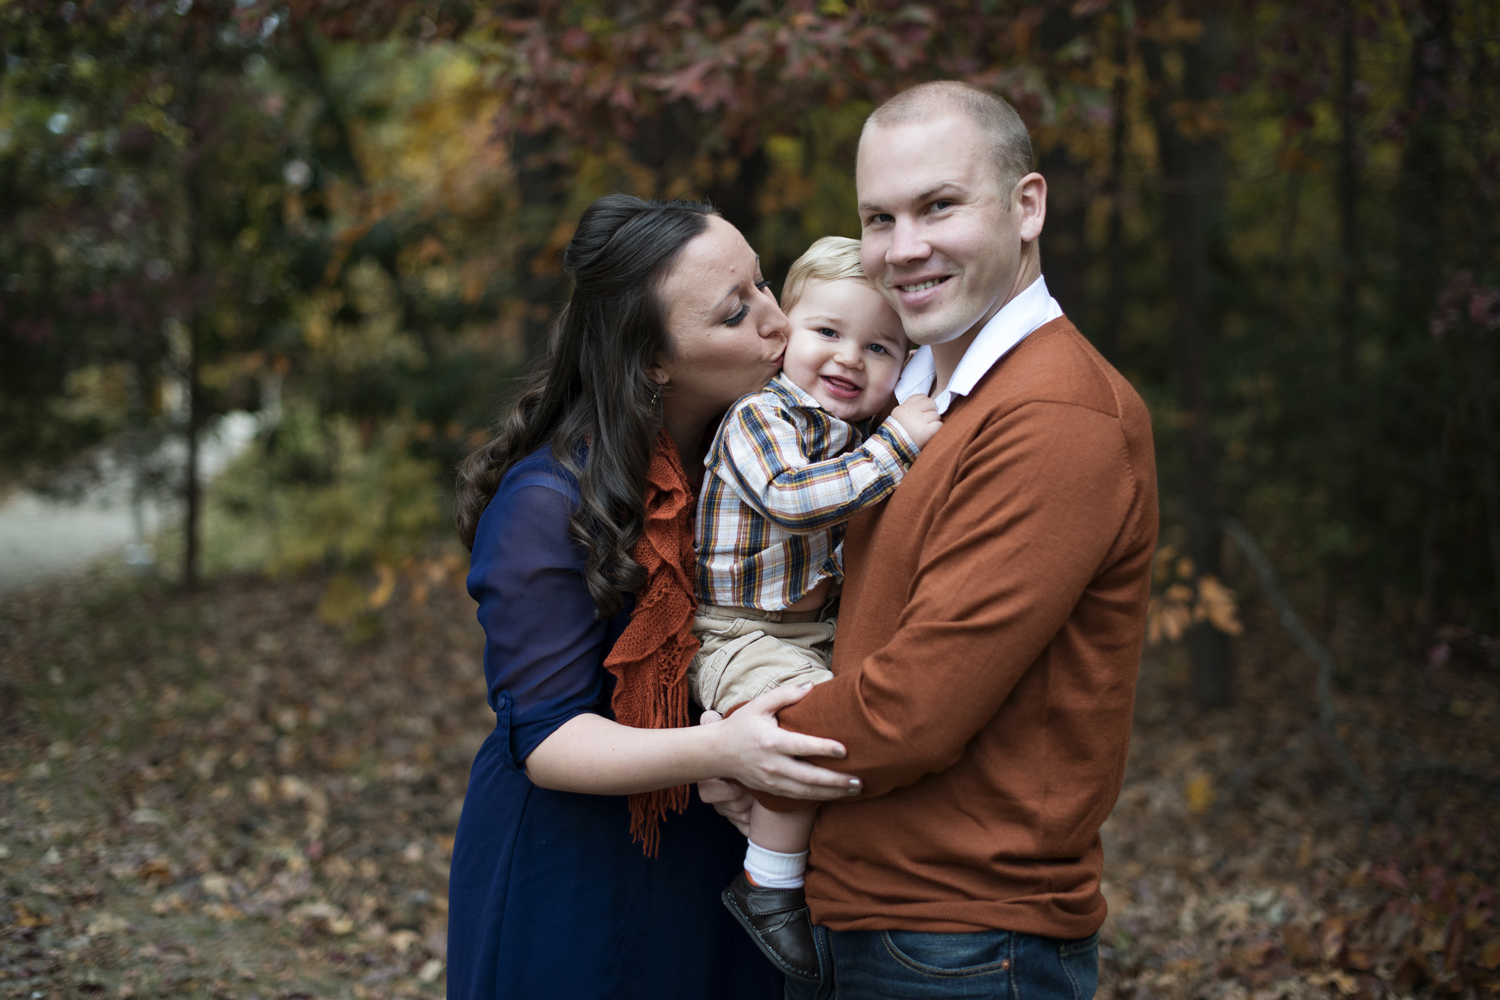 Blue and orange fall outfit ideas for family pictures